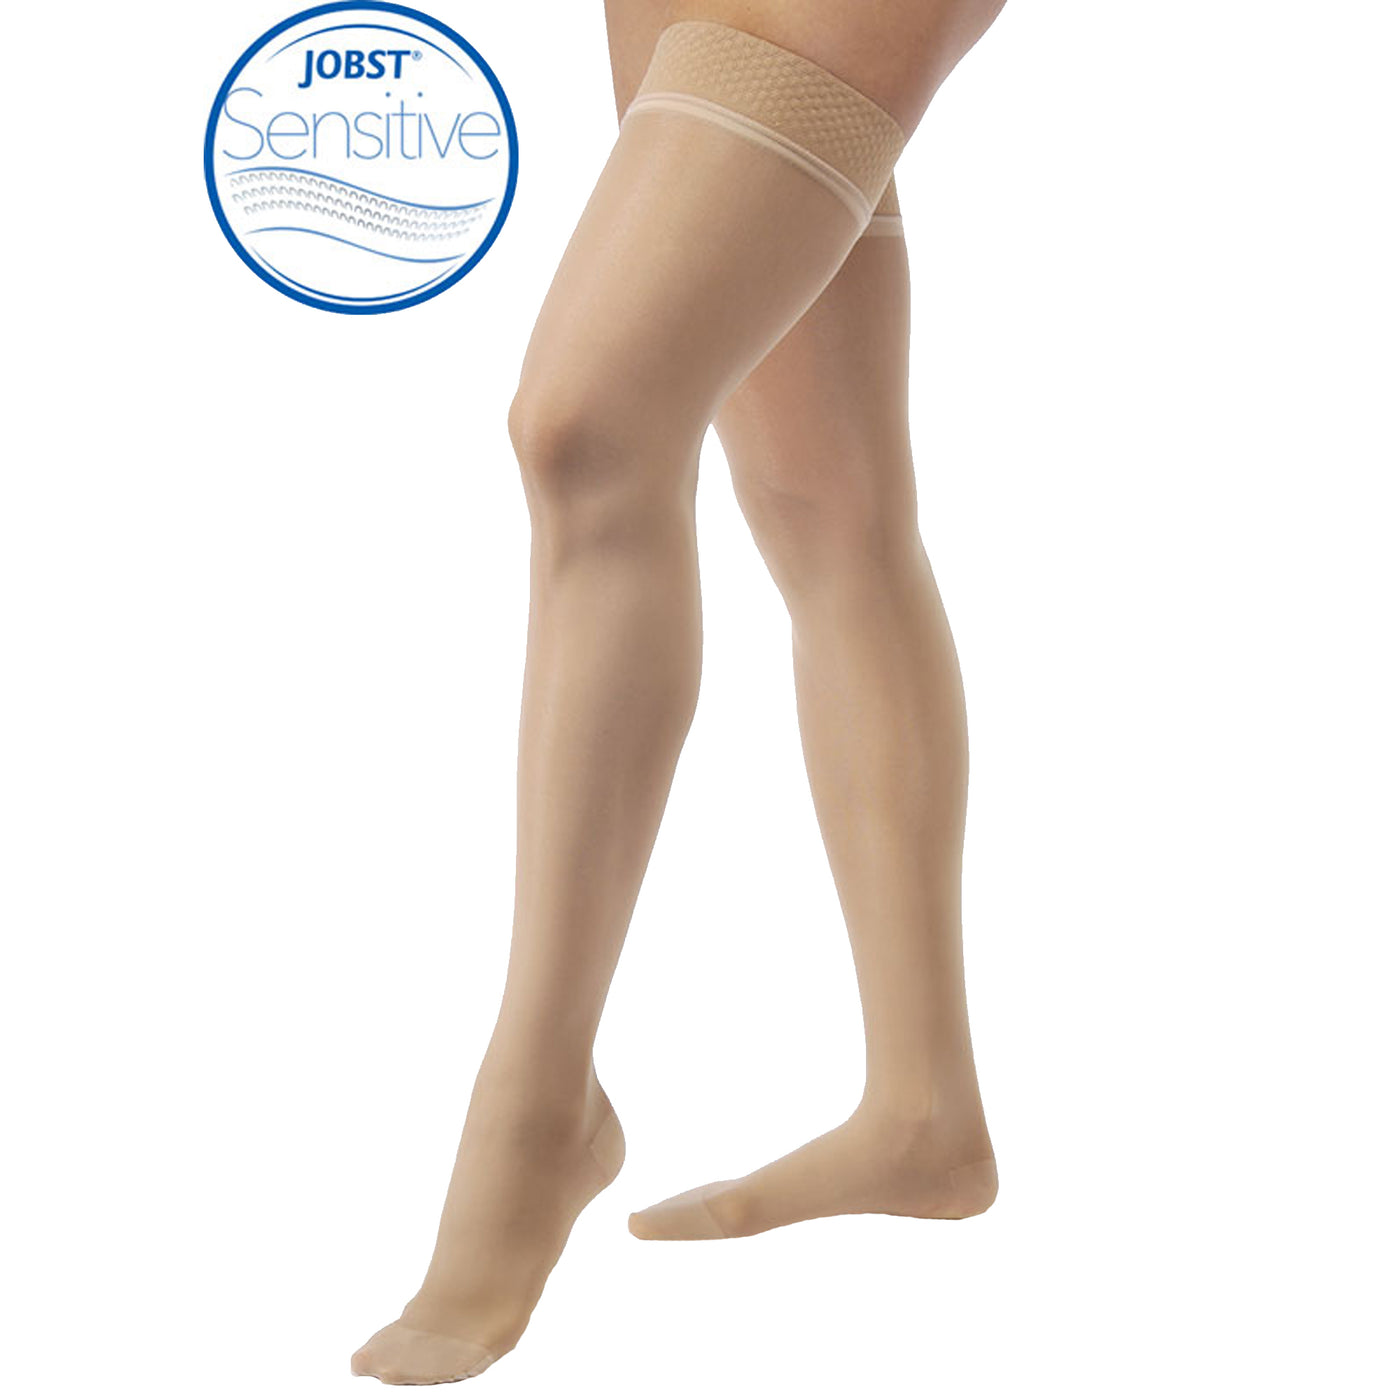 687ccce13 BrightLife Direct. Home Jobst UltraSheer SENSITIVE Thigh Highs 15-20mmHg  Closed Toe. Hover to zoom